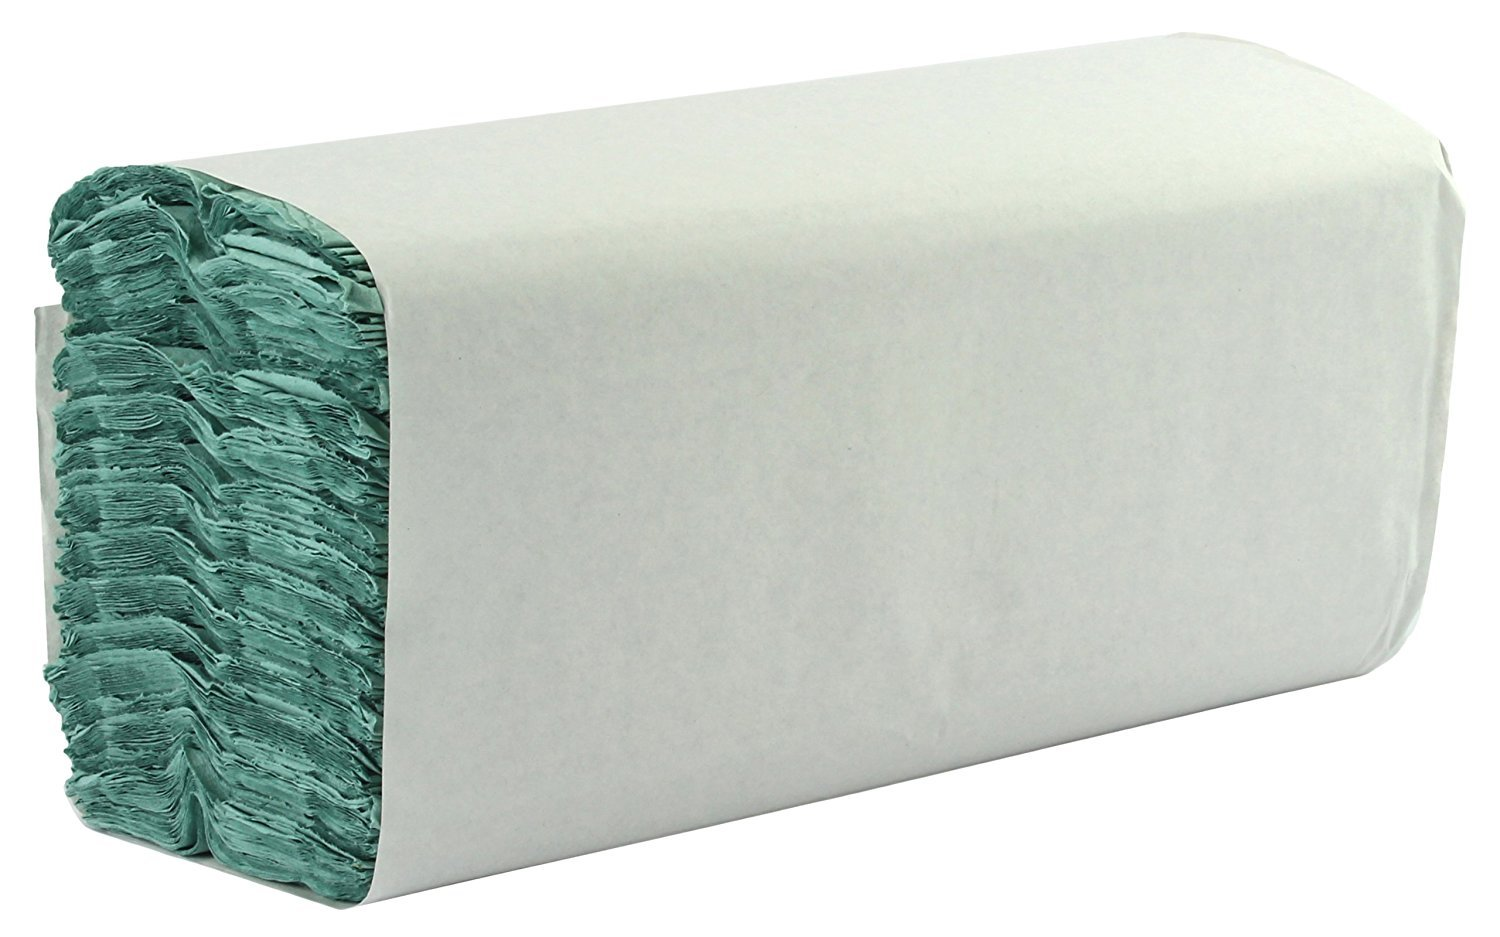 Essentials SPD40 C Fold Hand Towel Pack of 2560 Green